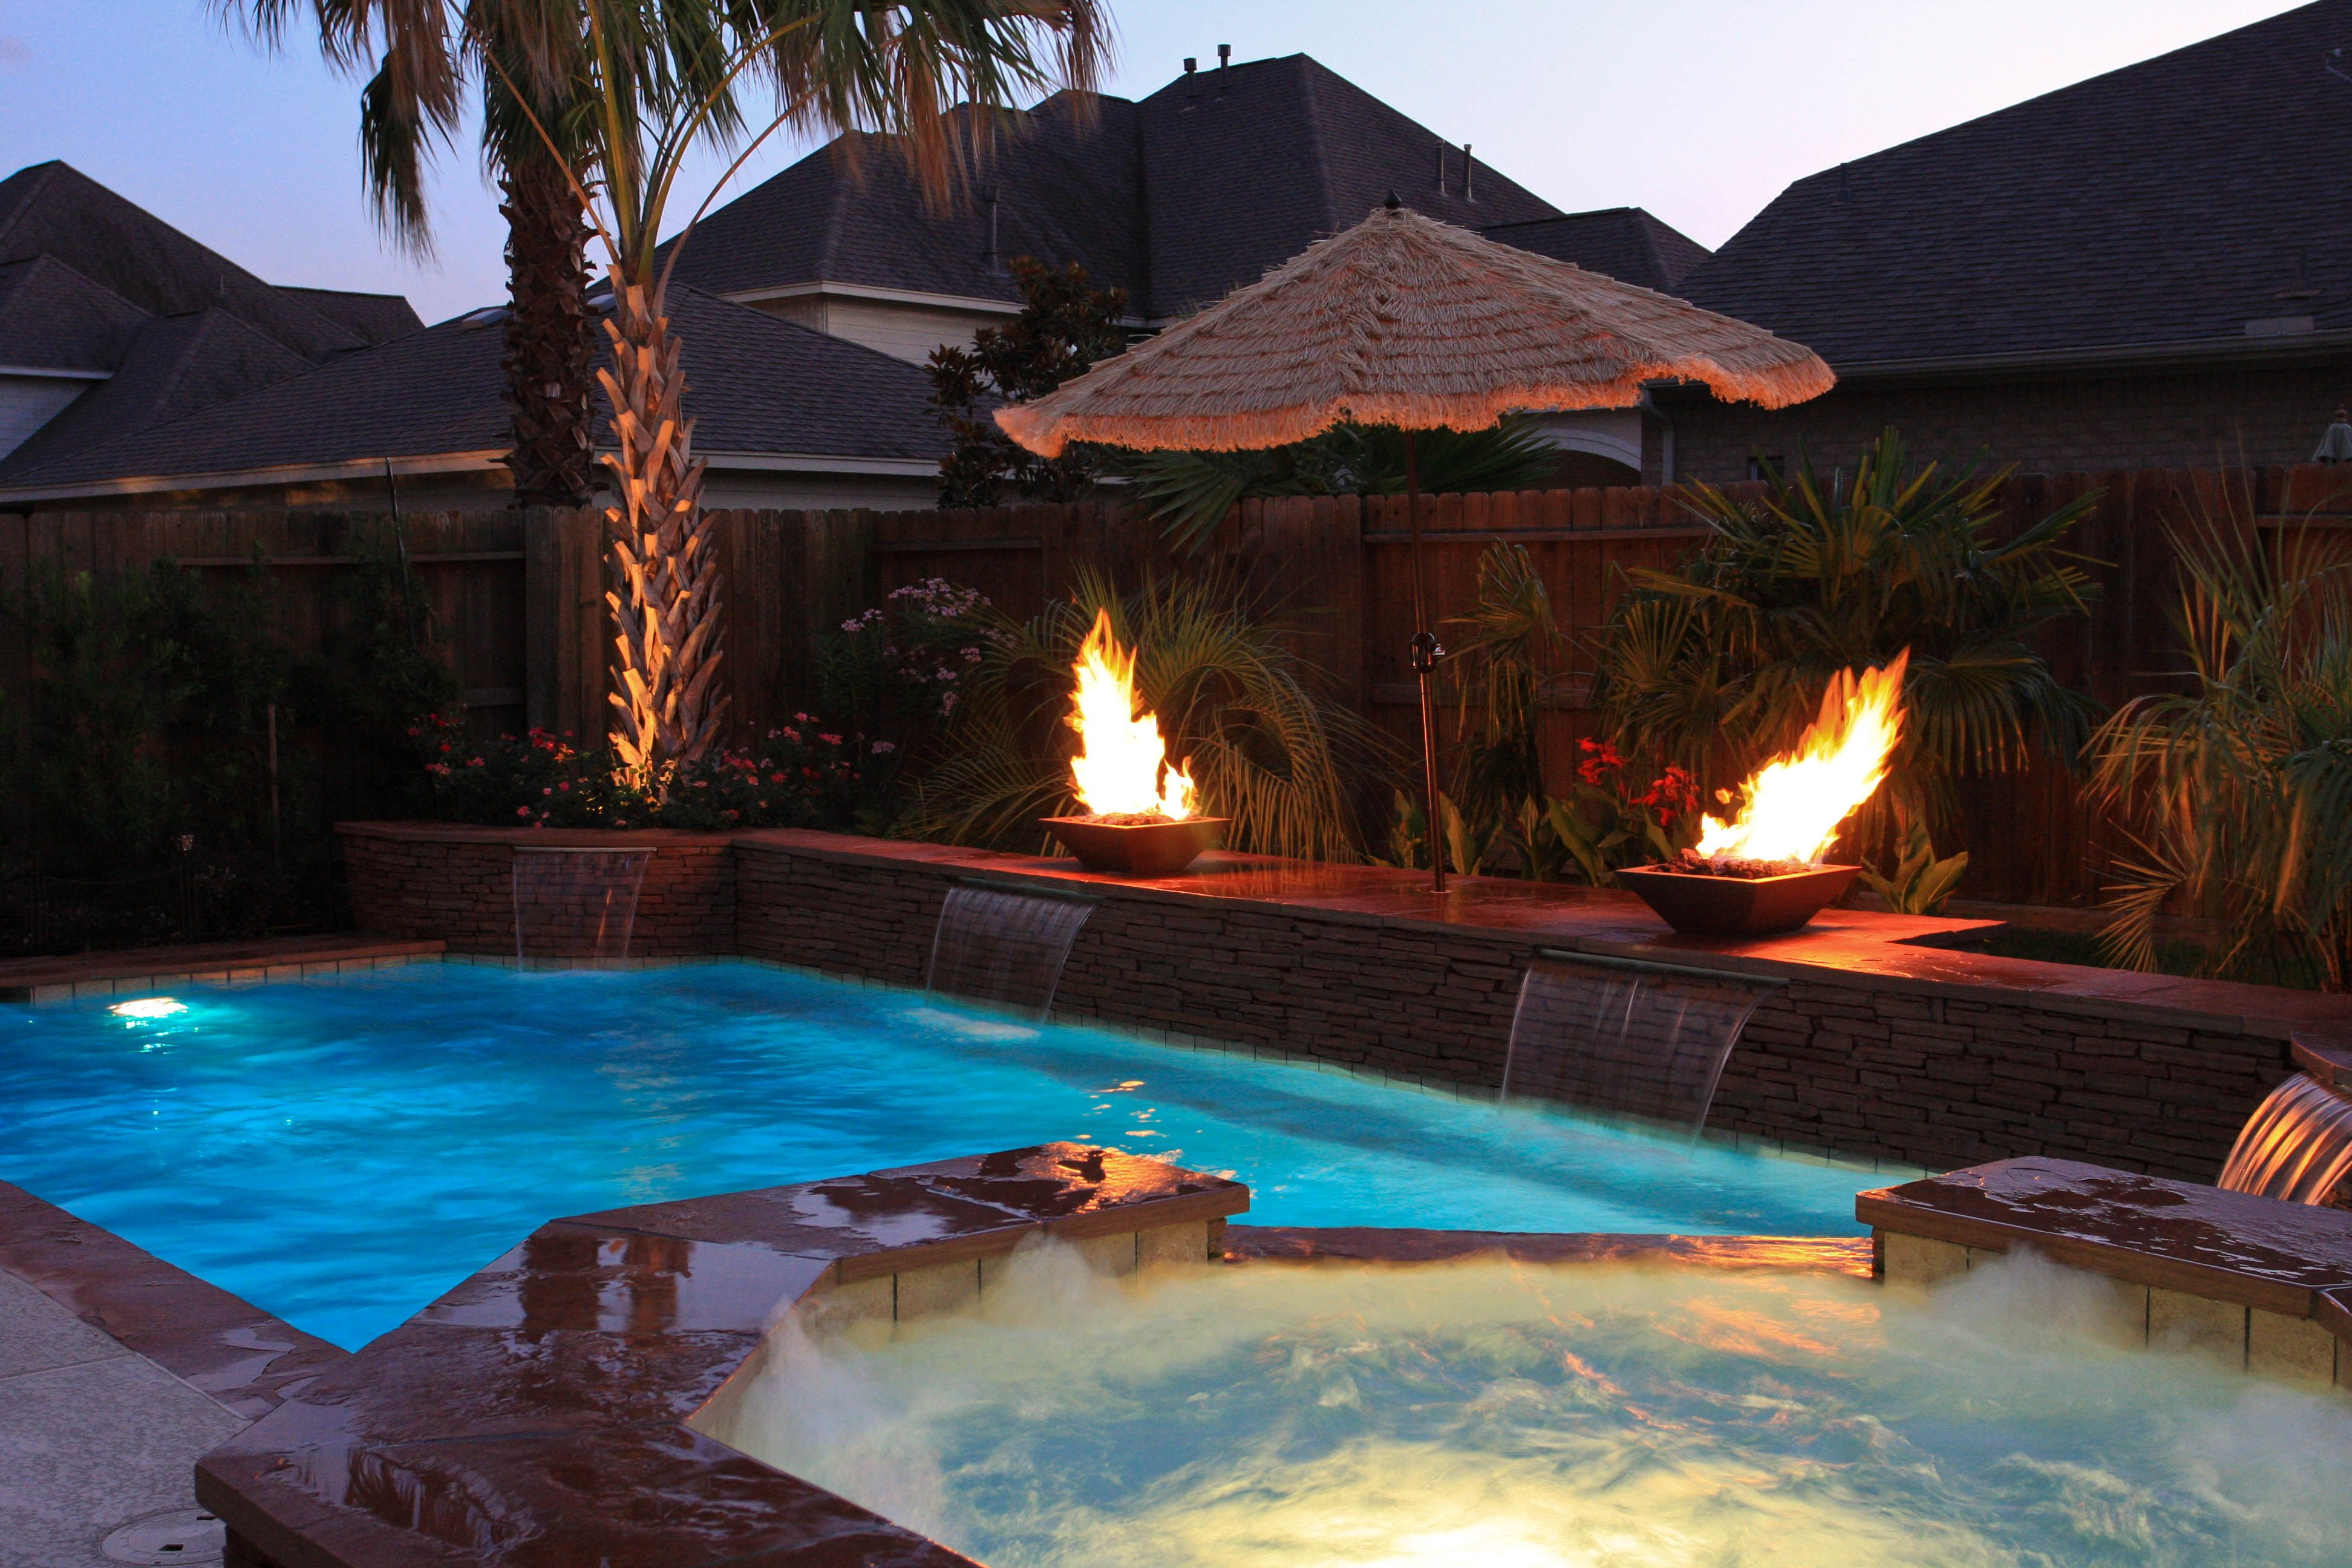 Fire bowls with sheer descents swimming pool fire features pinterest fire bowls swimming - Pool fire bowls ...